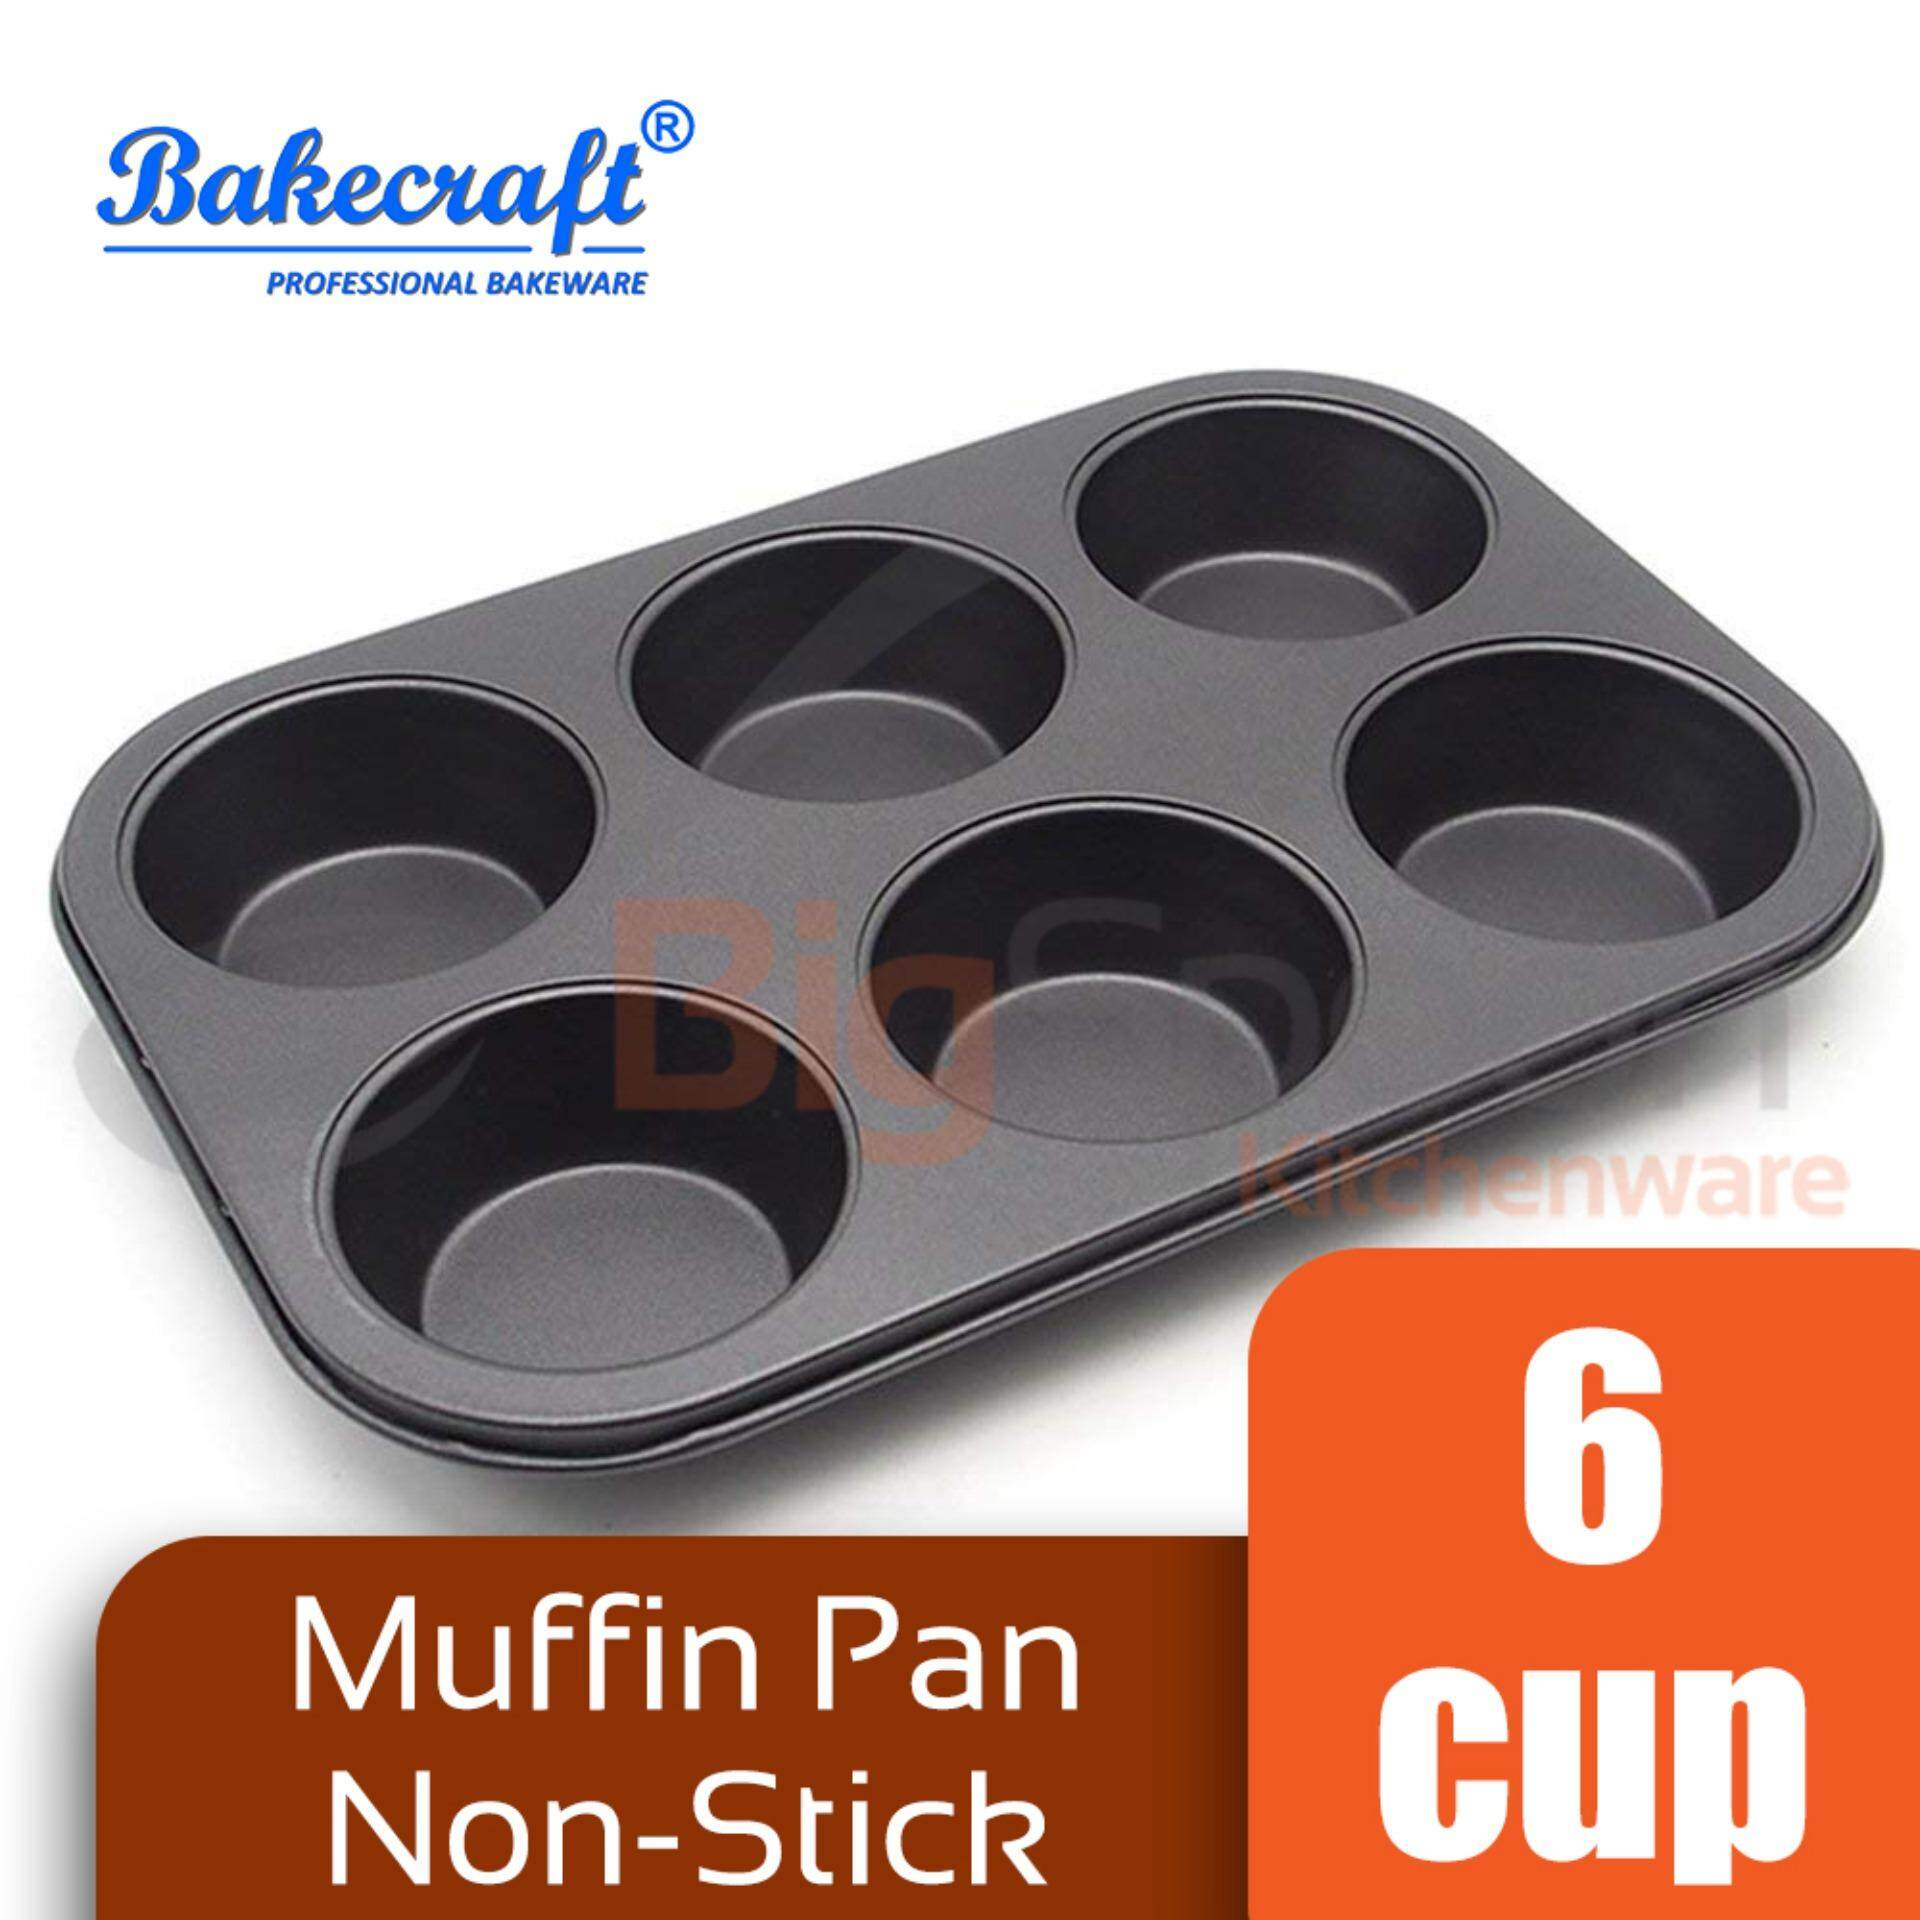 BAKECRAFT Muffin Pan 6 Cup Non-Stick